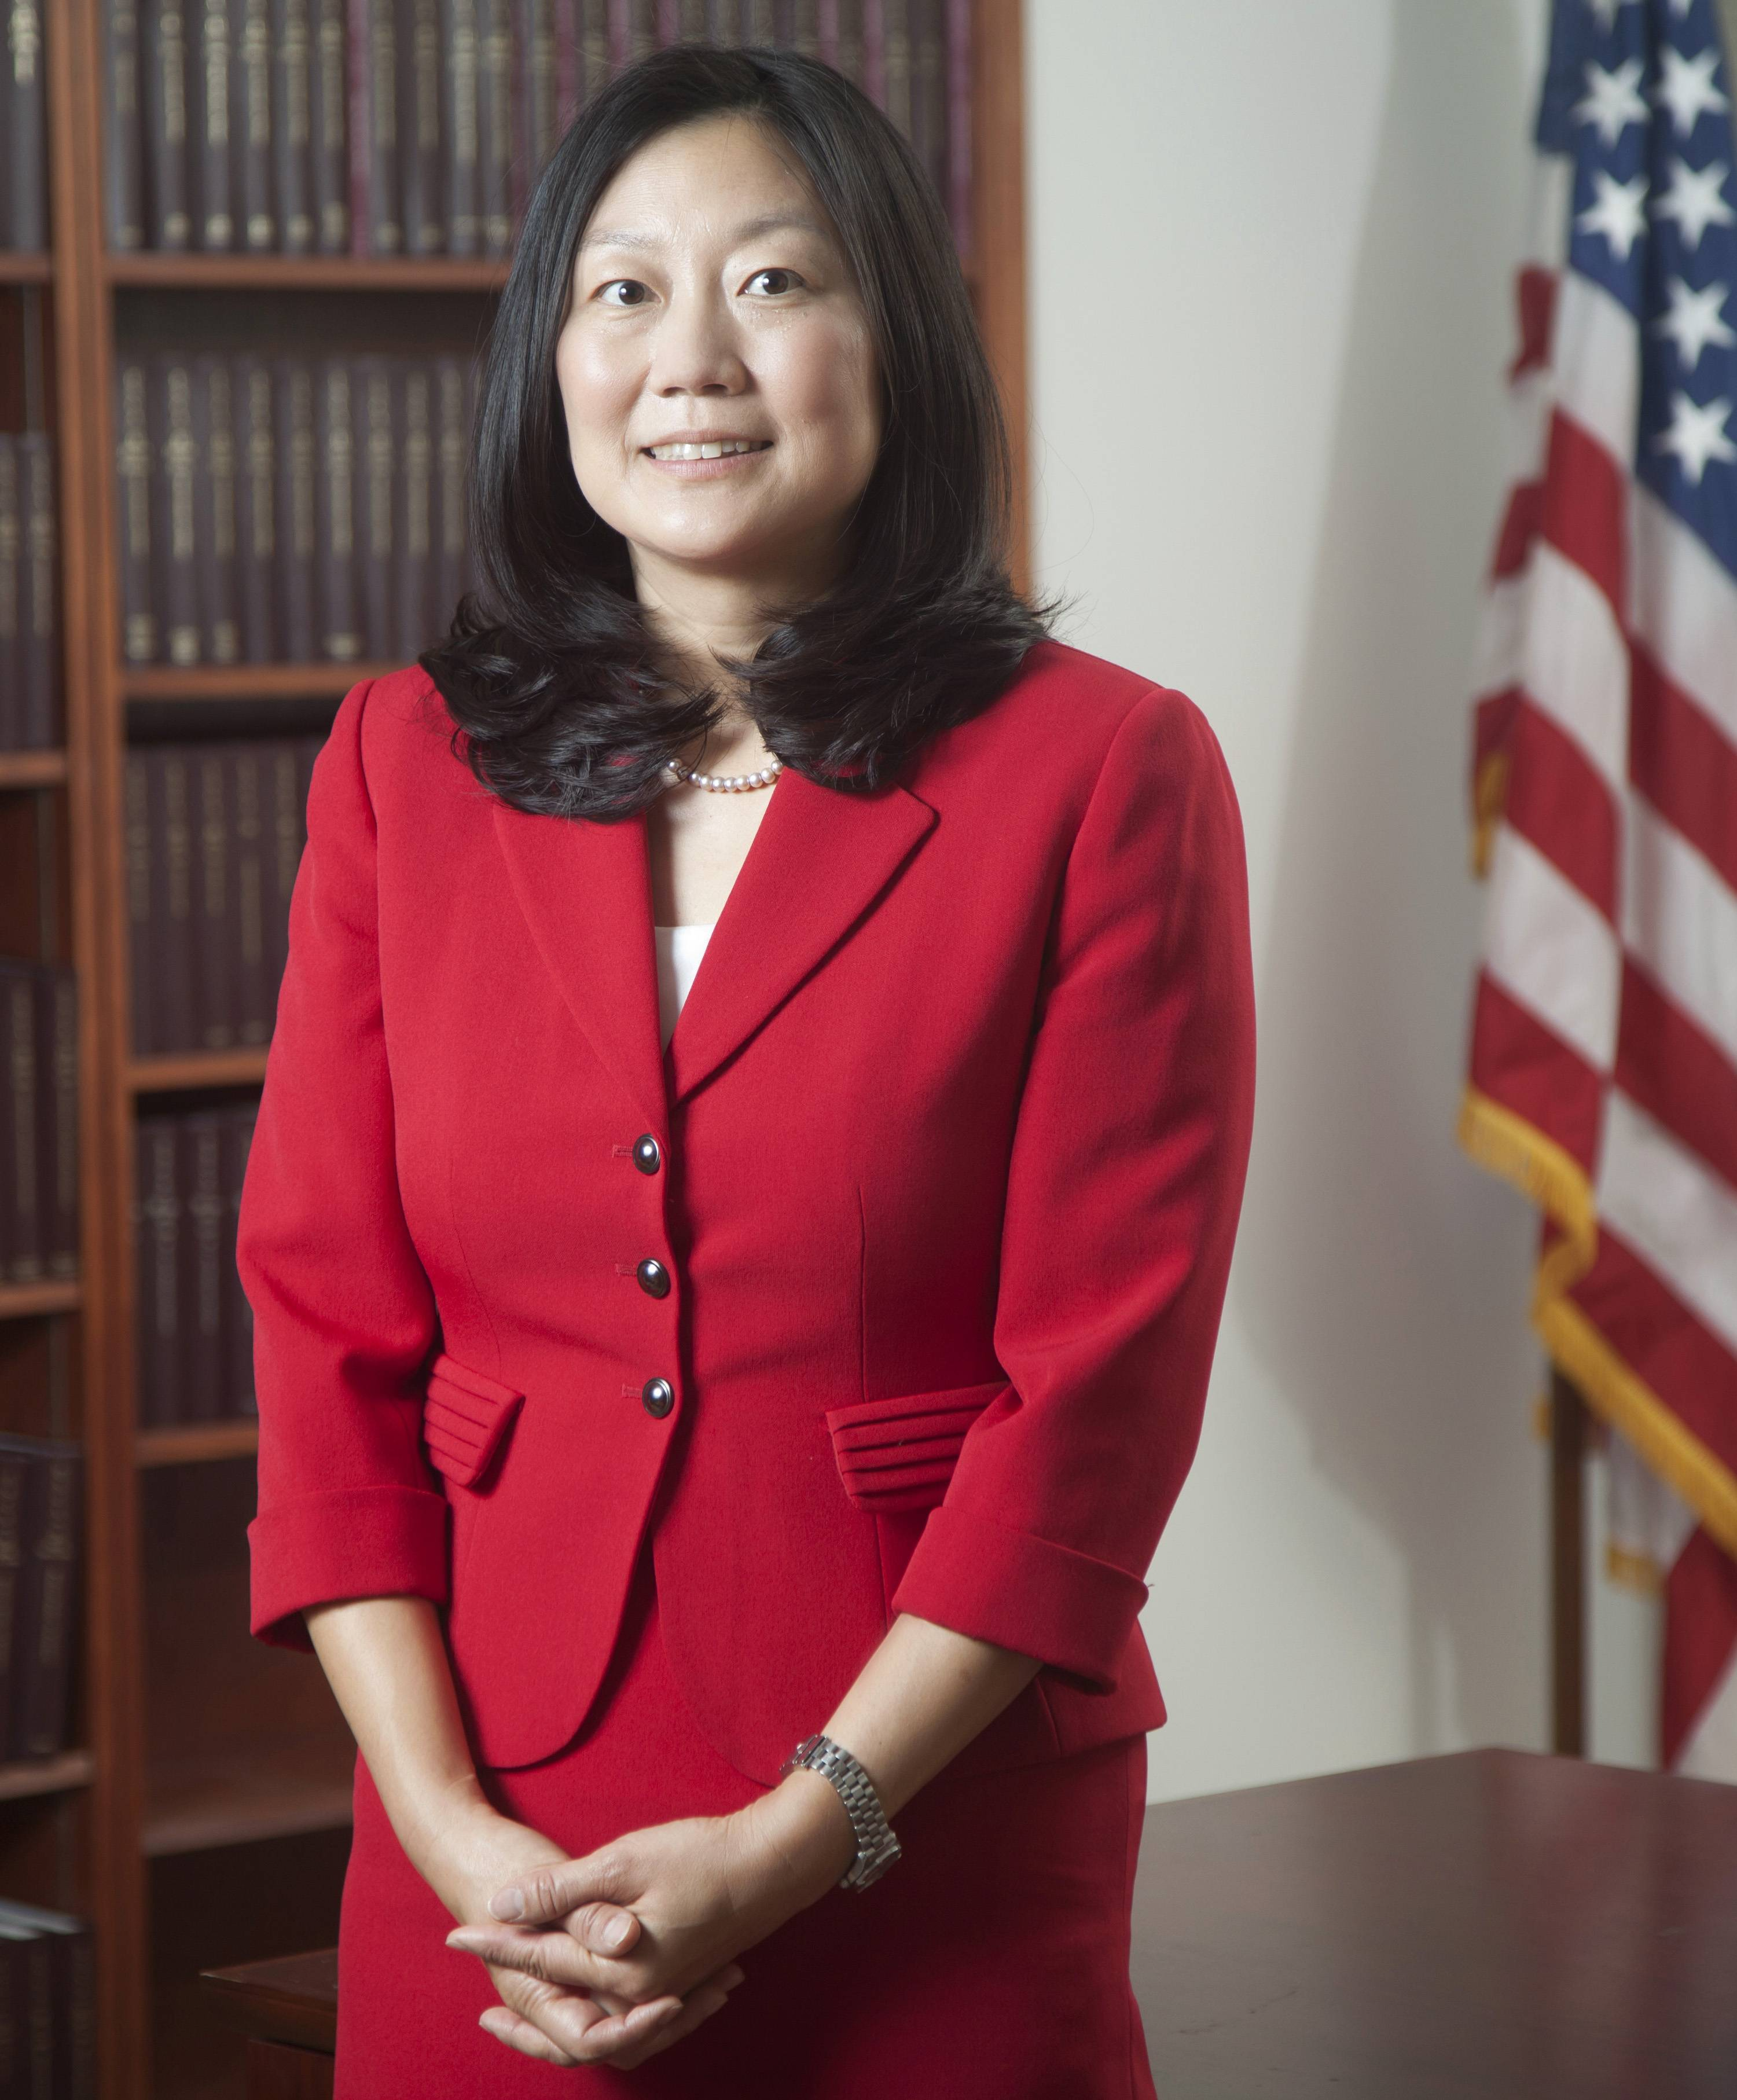 U.S. District Judge Lucy Koh